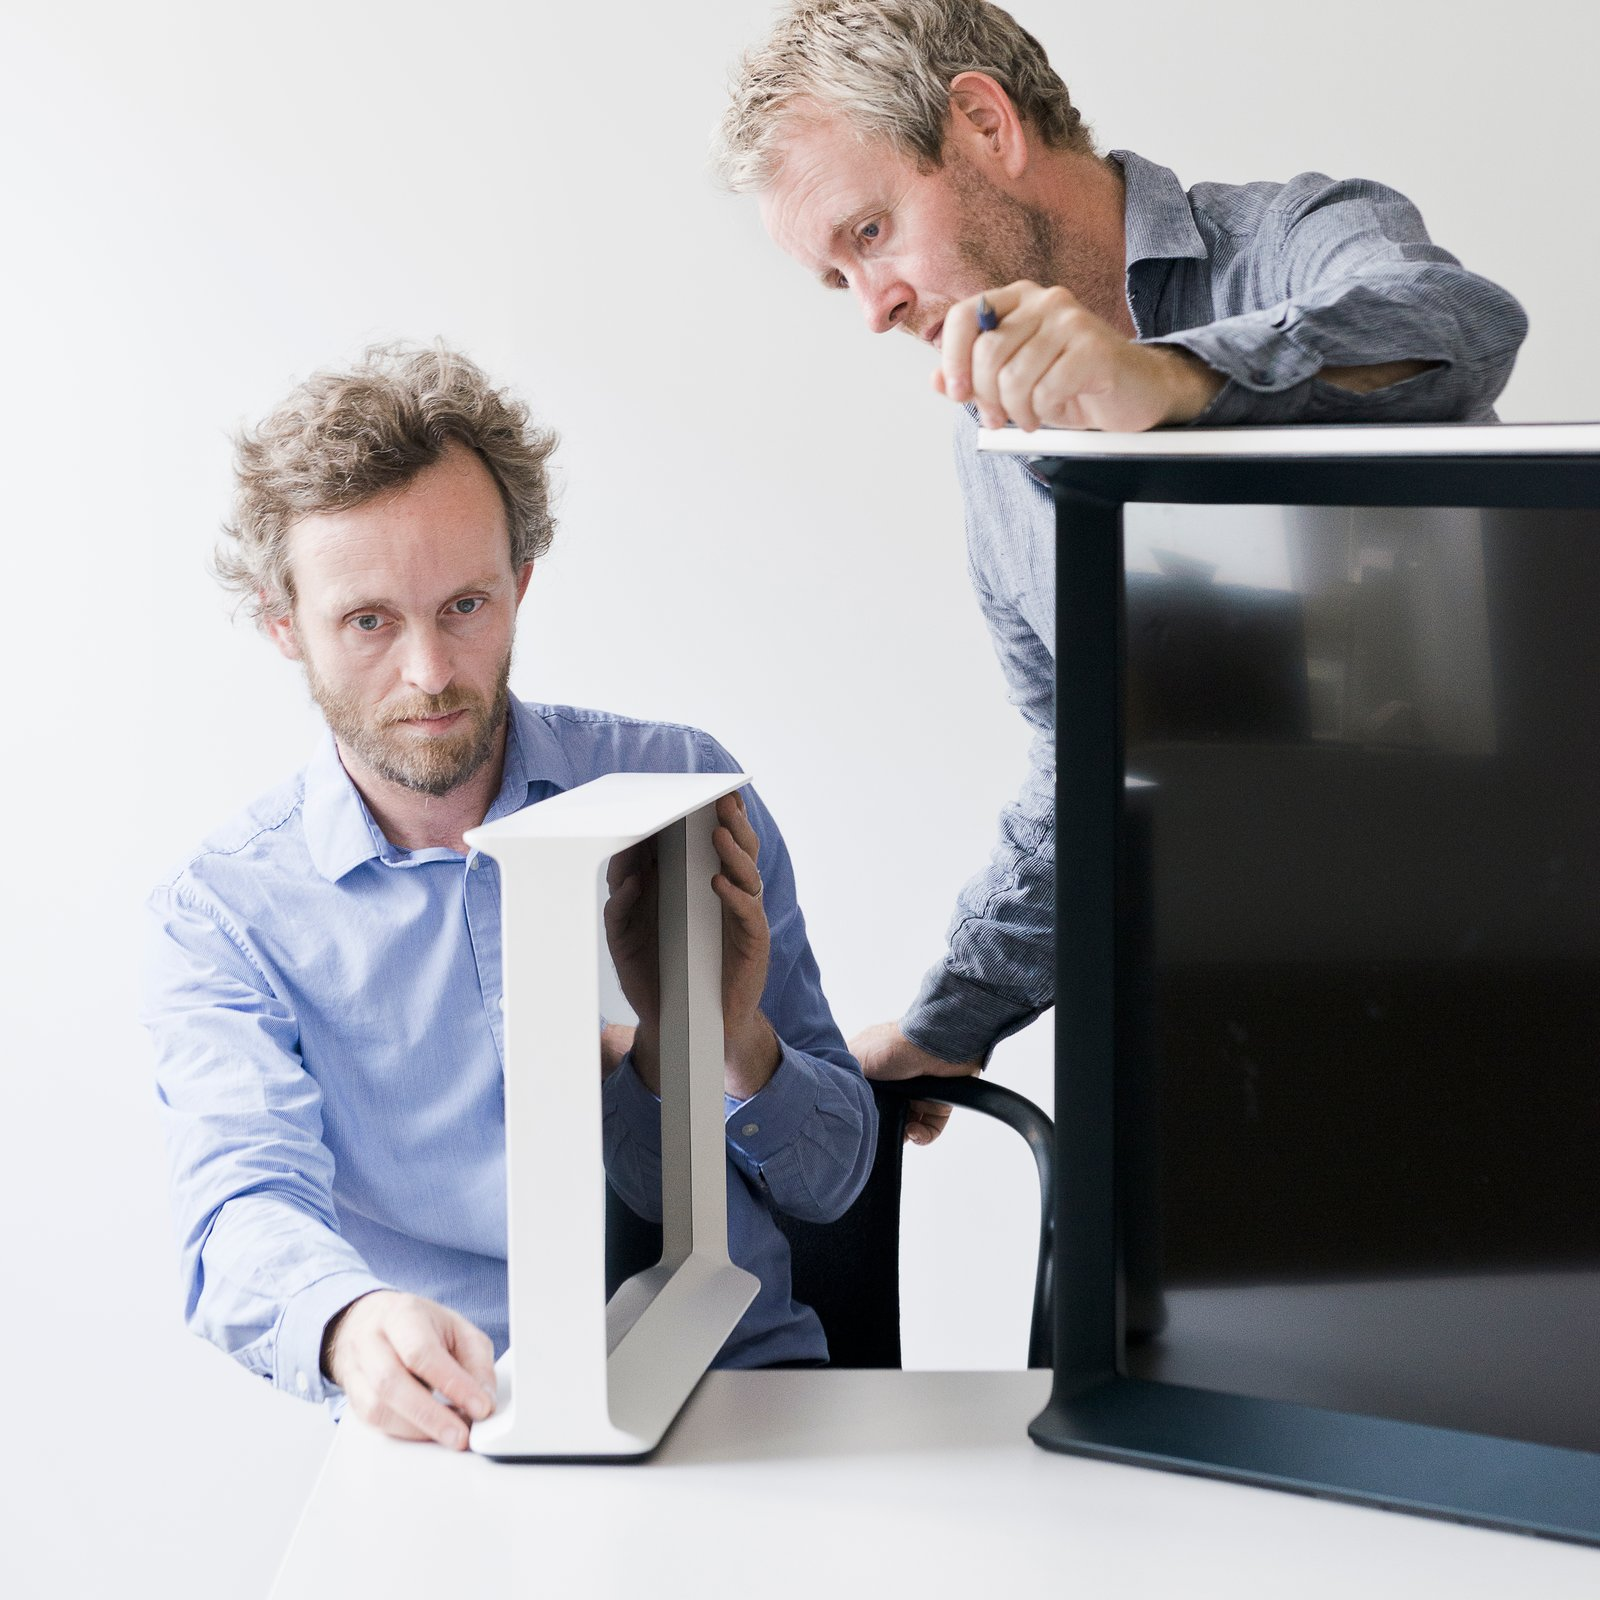 Photo 1 of 4 in The Bouroullec Brothers Turn Back the Dial to When TVs Were Furniture